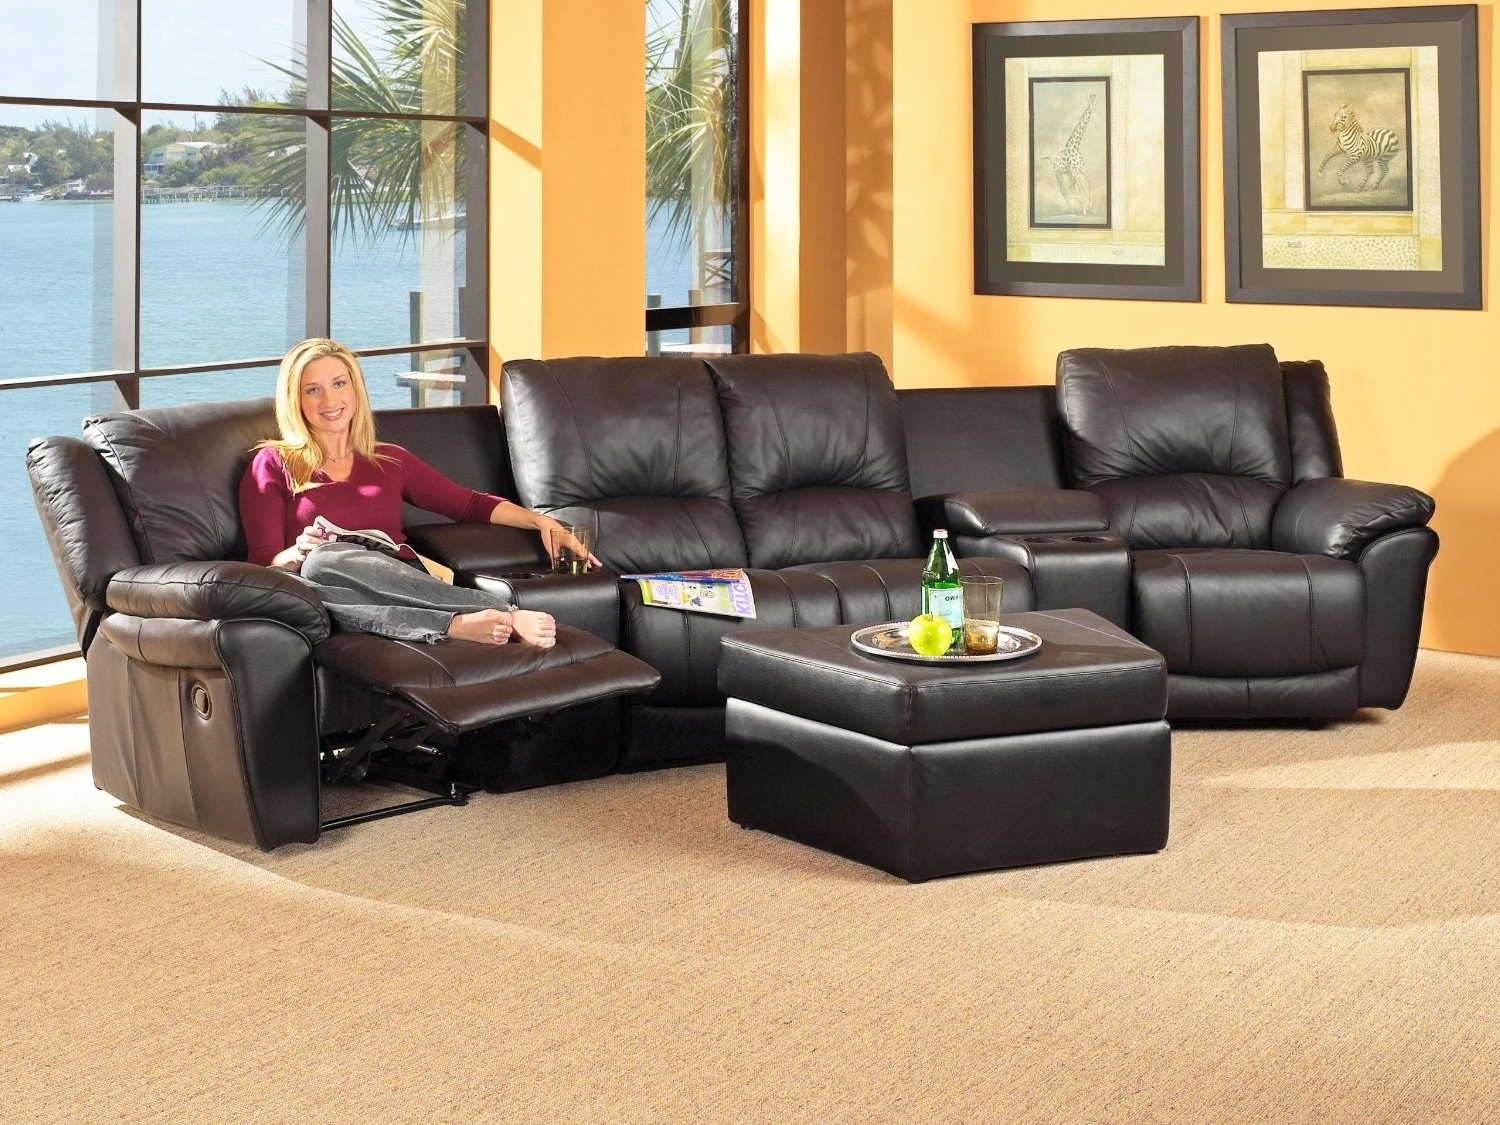 Fresh Reclining Sectional Sofas For Small Spaces 62 About Remodel Intended For Trendy Small Spaces Sectional Sofas (View 5 of 20)